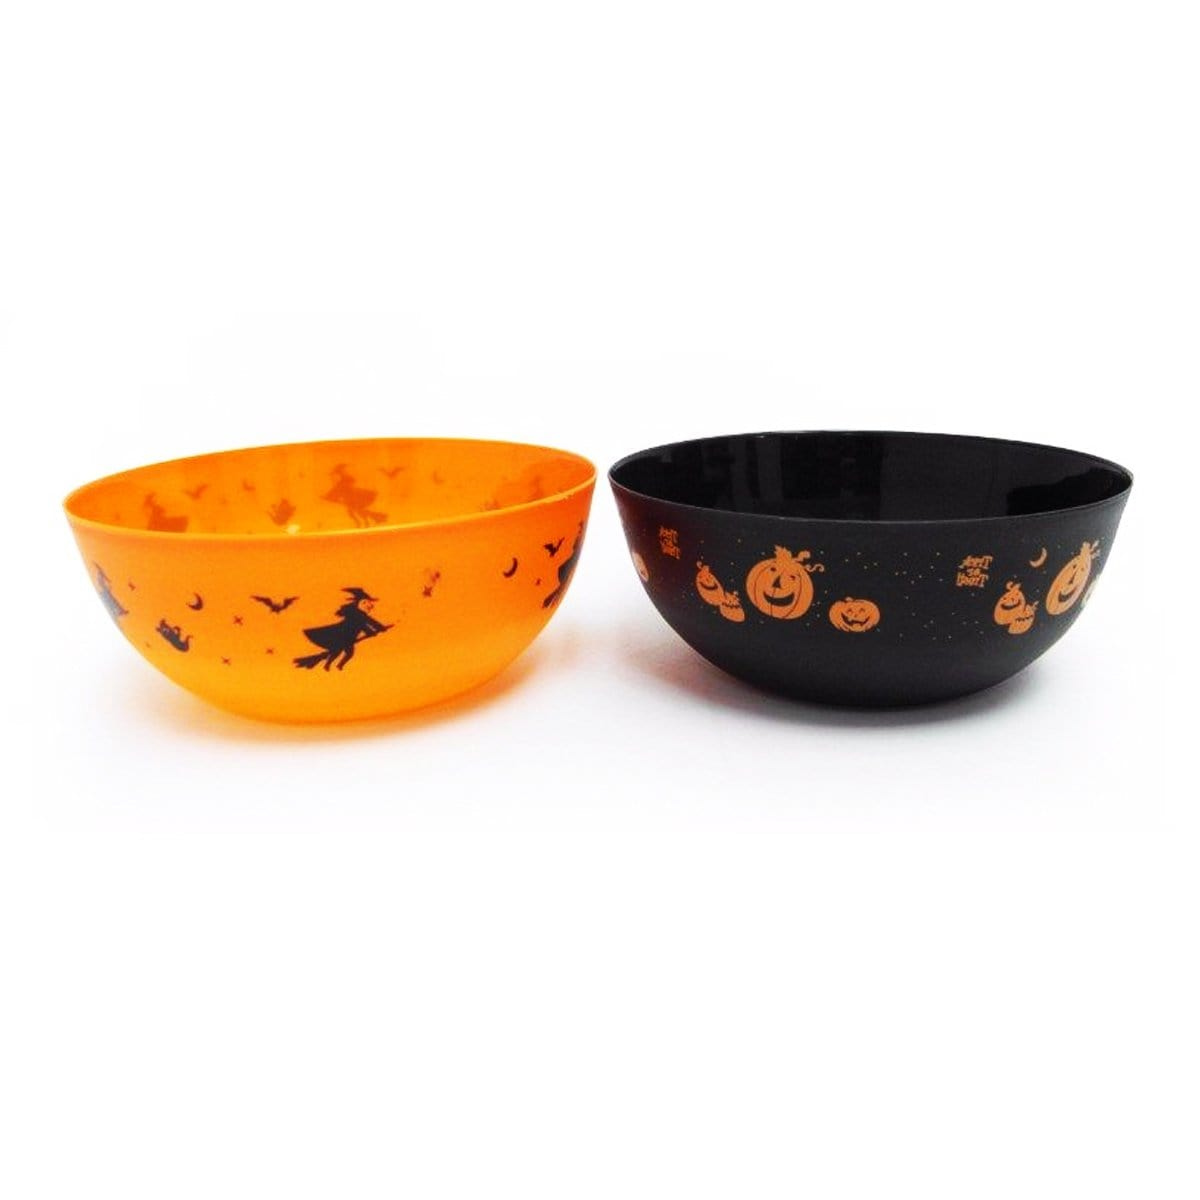 HALLOWEEN BOWL 25x10cm ASST - Christmas World